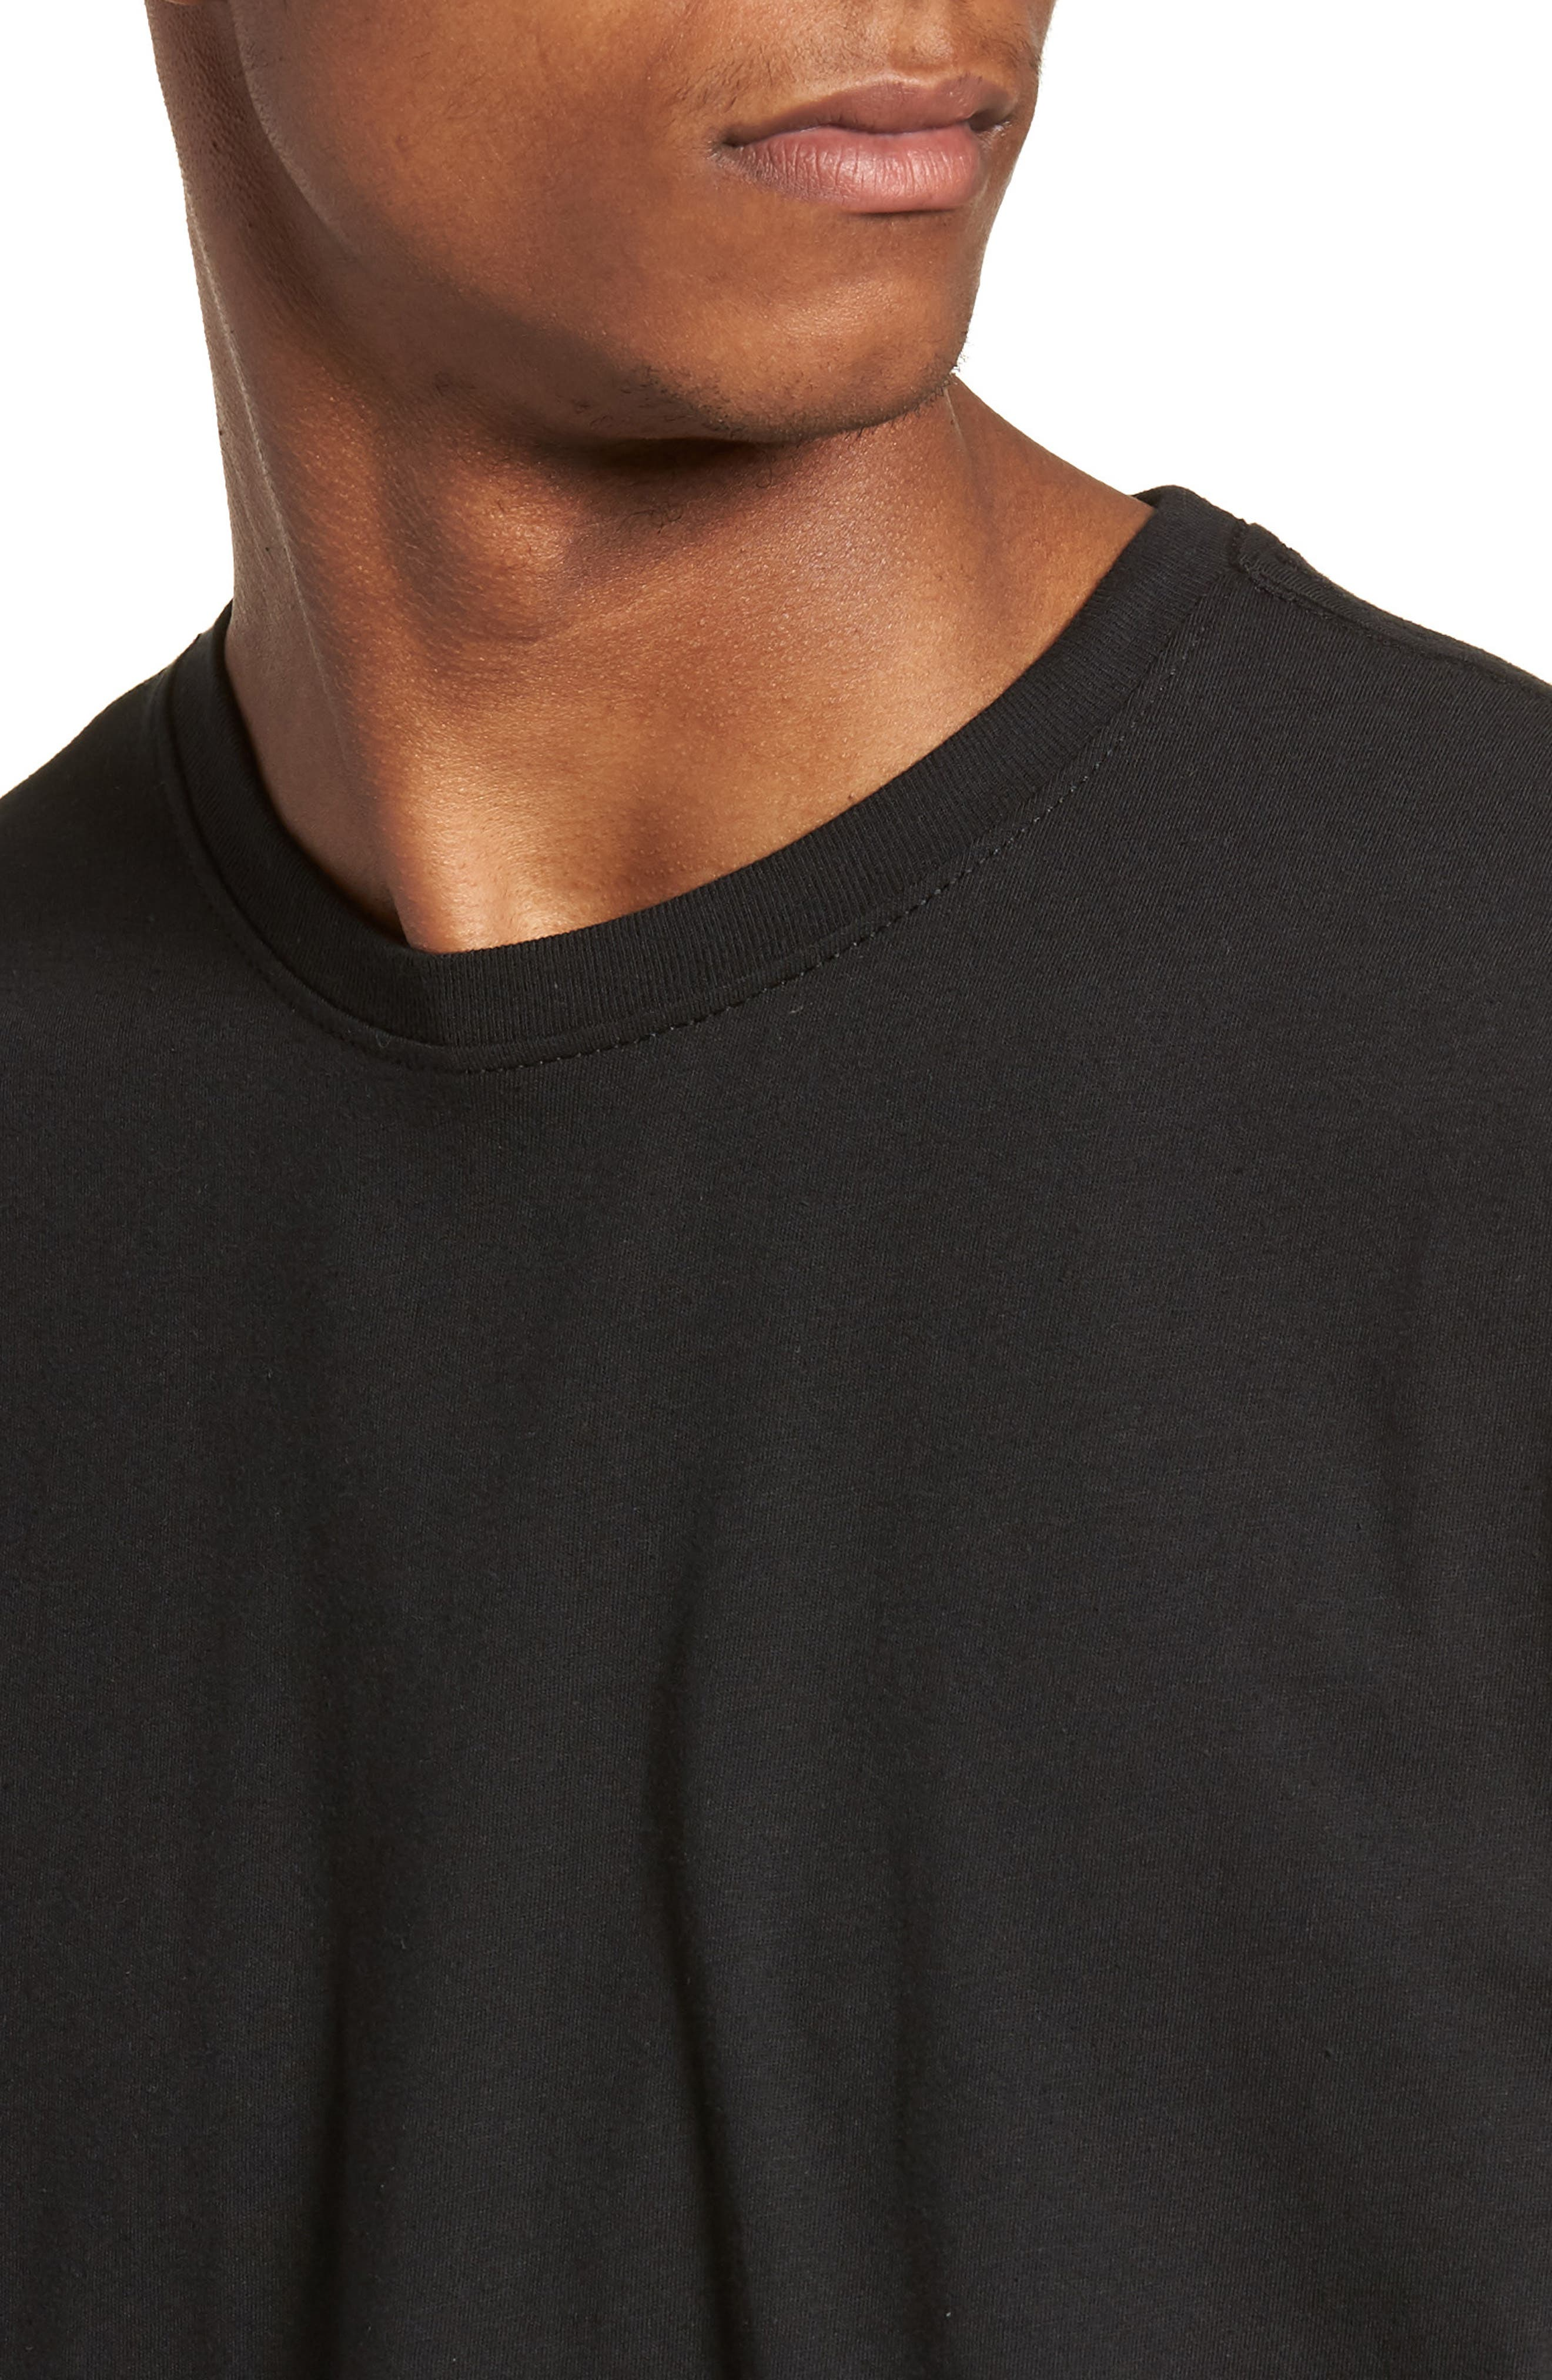 Essential Magnified Logo T-Shirt,                             Alternate thumbnail 4, color,                             001